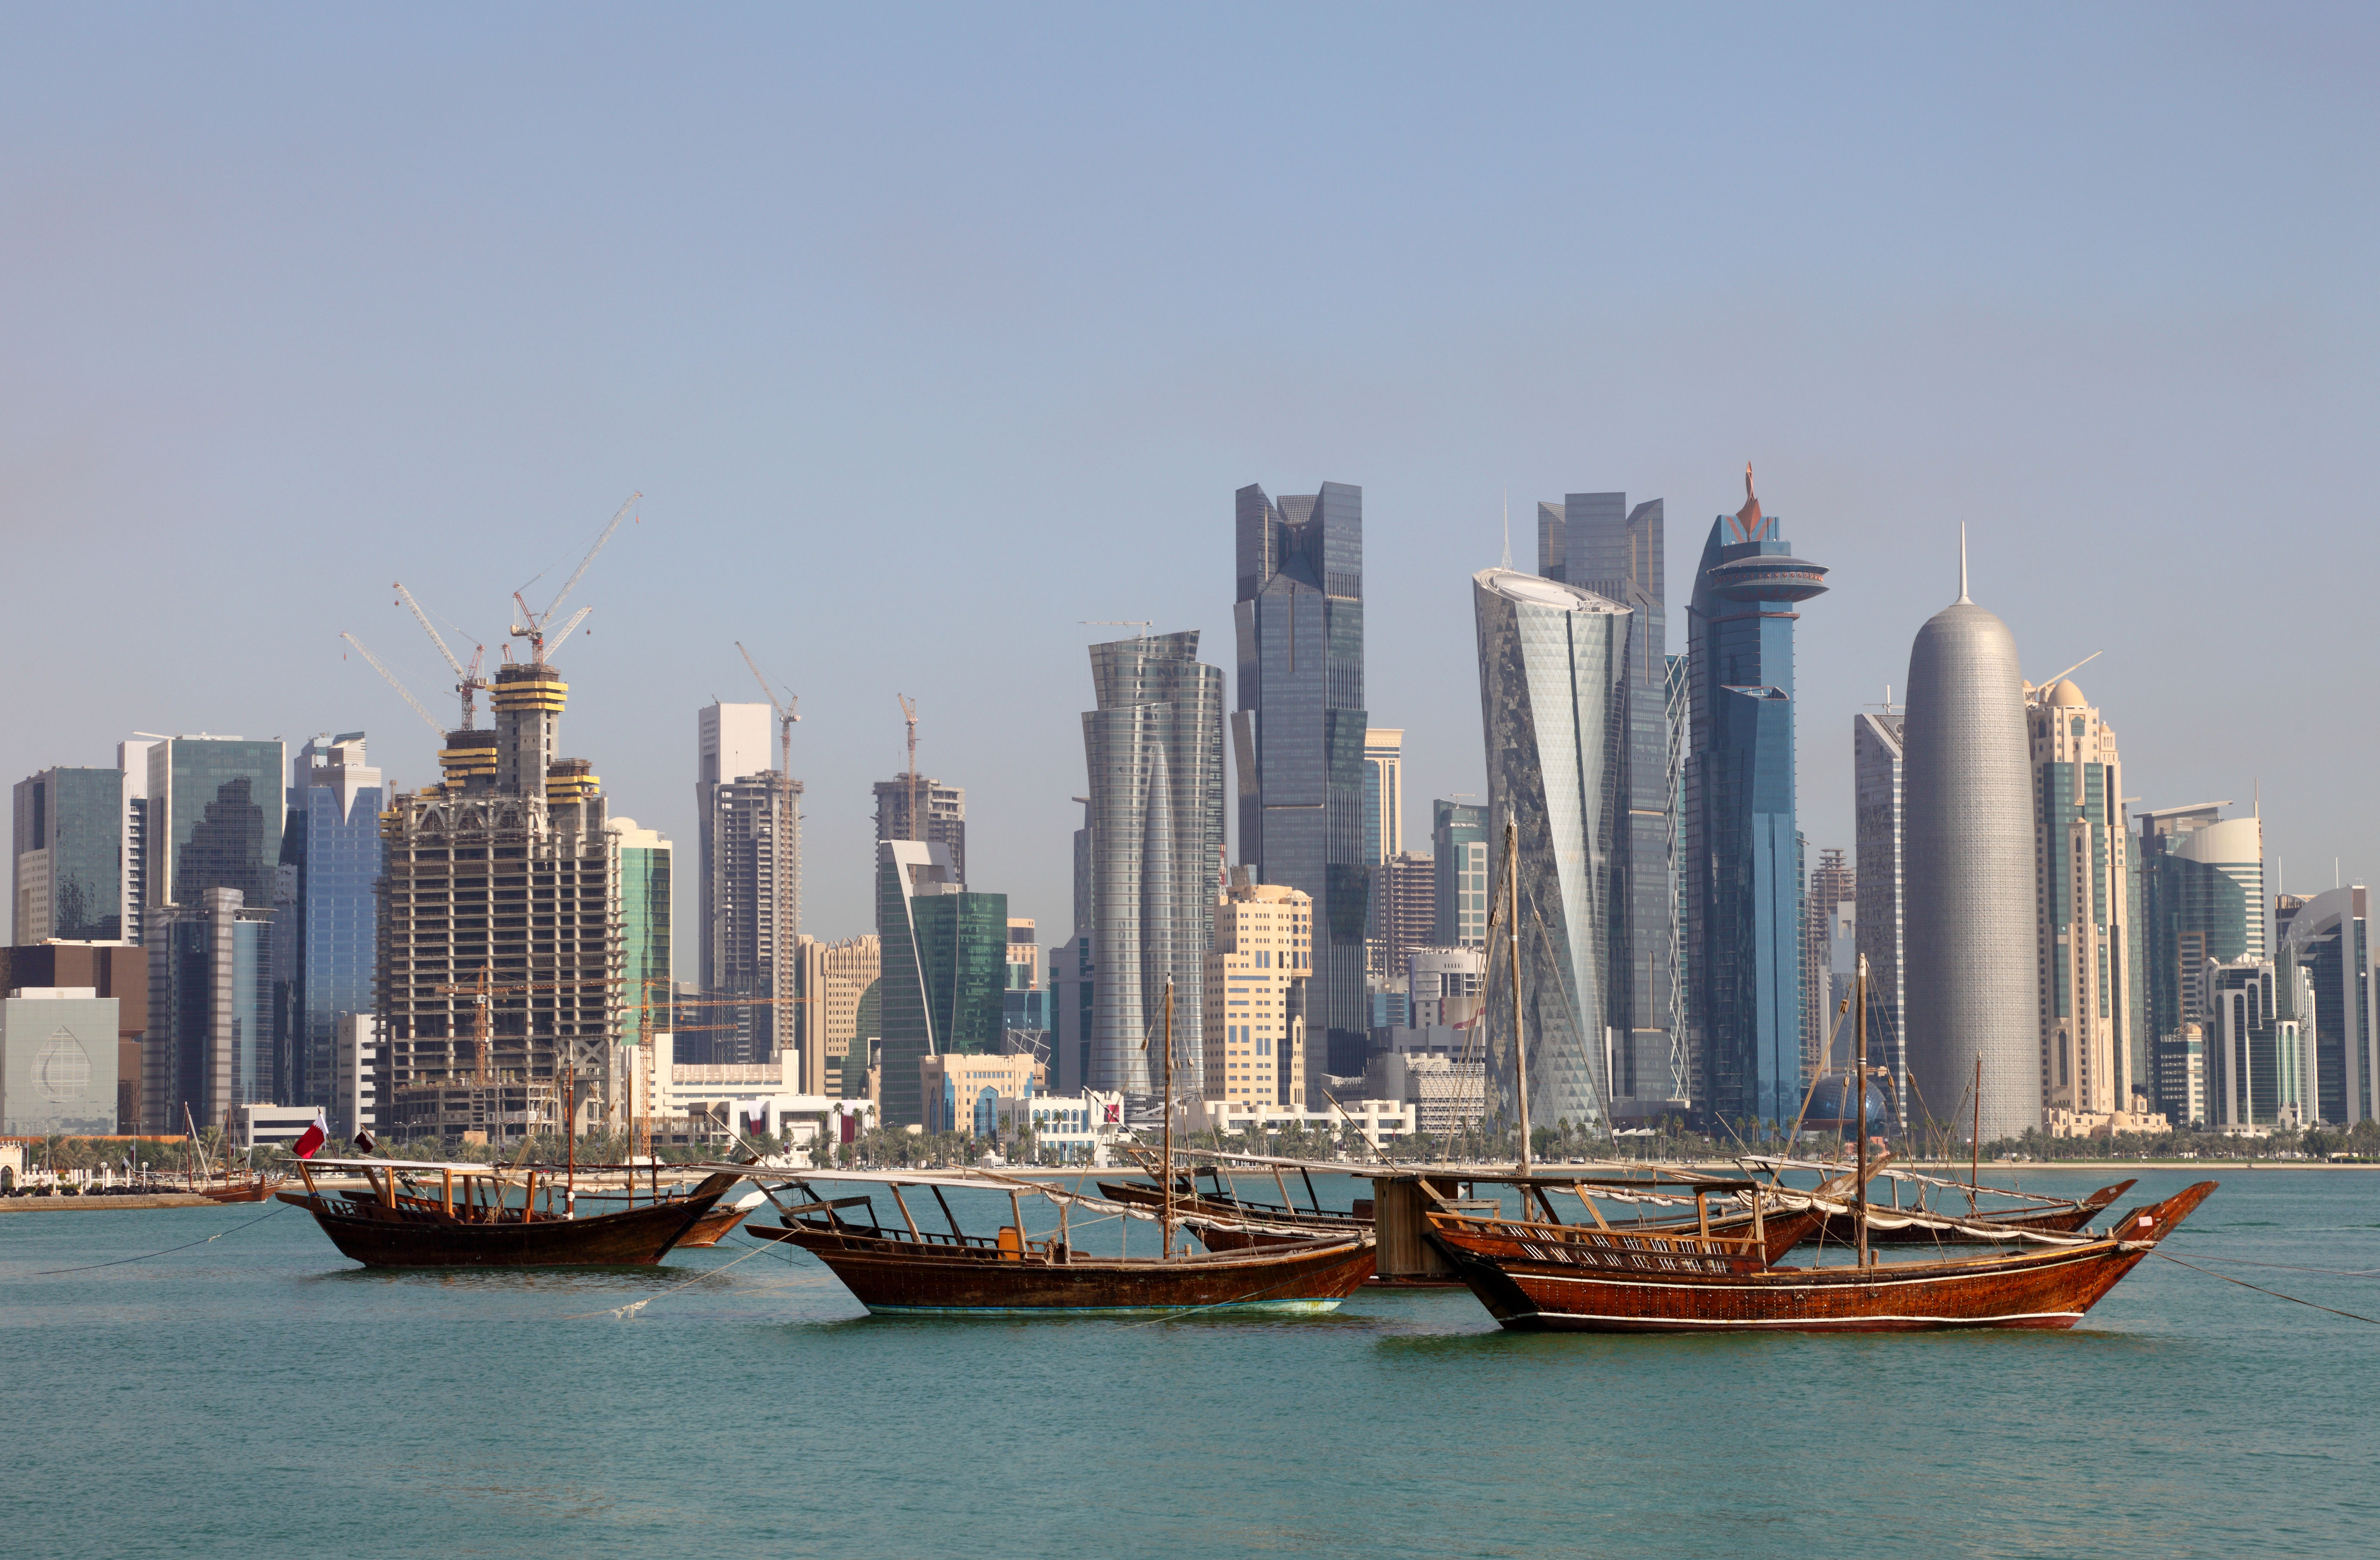 Skyline of Doha with traditional arabic dhows. Qatar, Middle East. Source: philipus/Fotolia